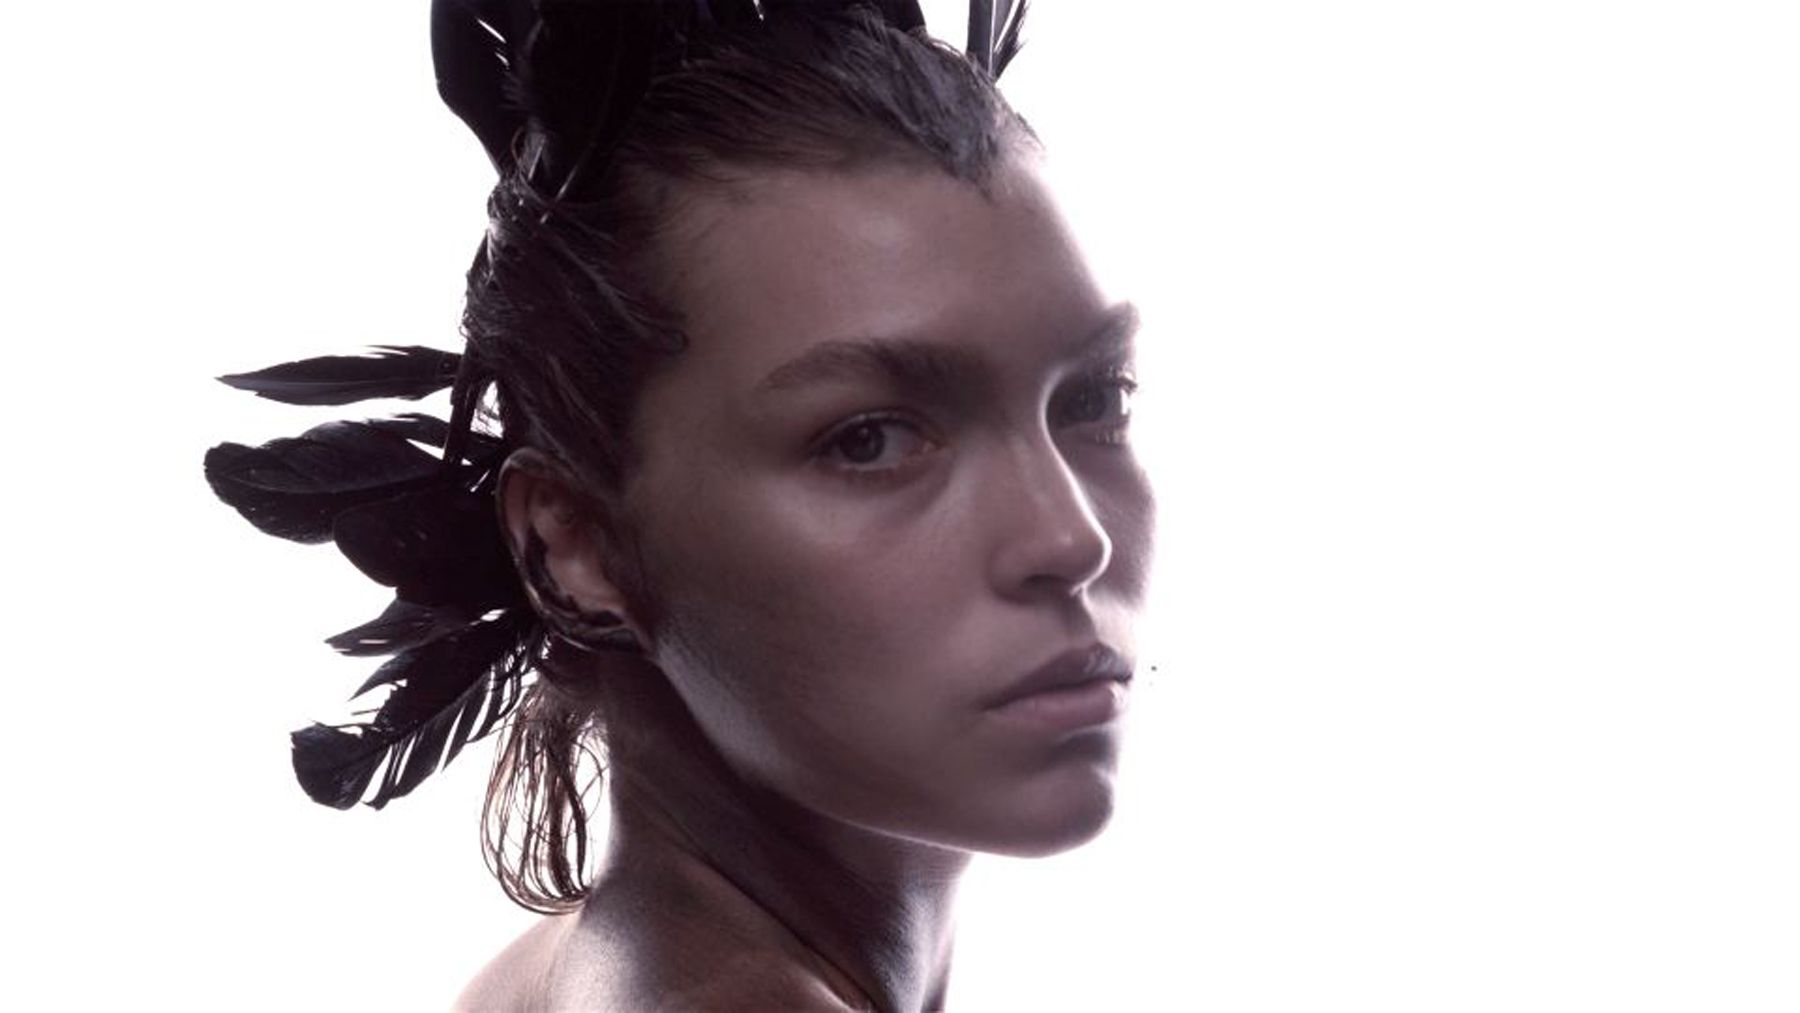 Arizona Muse: Natural Beauty - The Model Channels Her Inner Animal for James Houston's Eco Photo Series